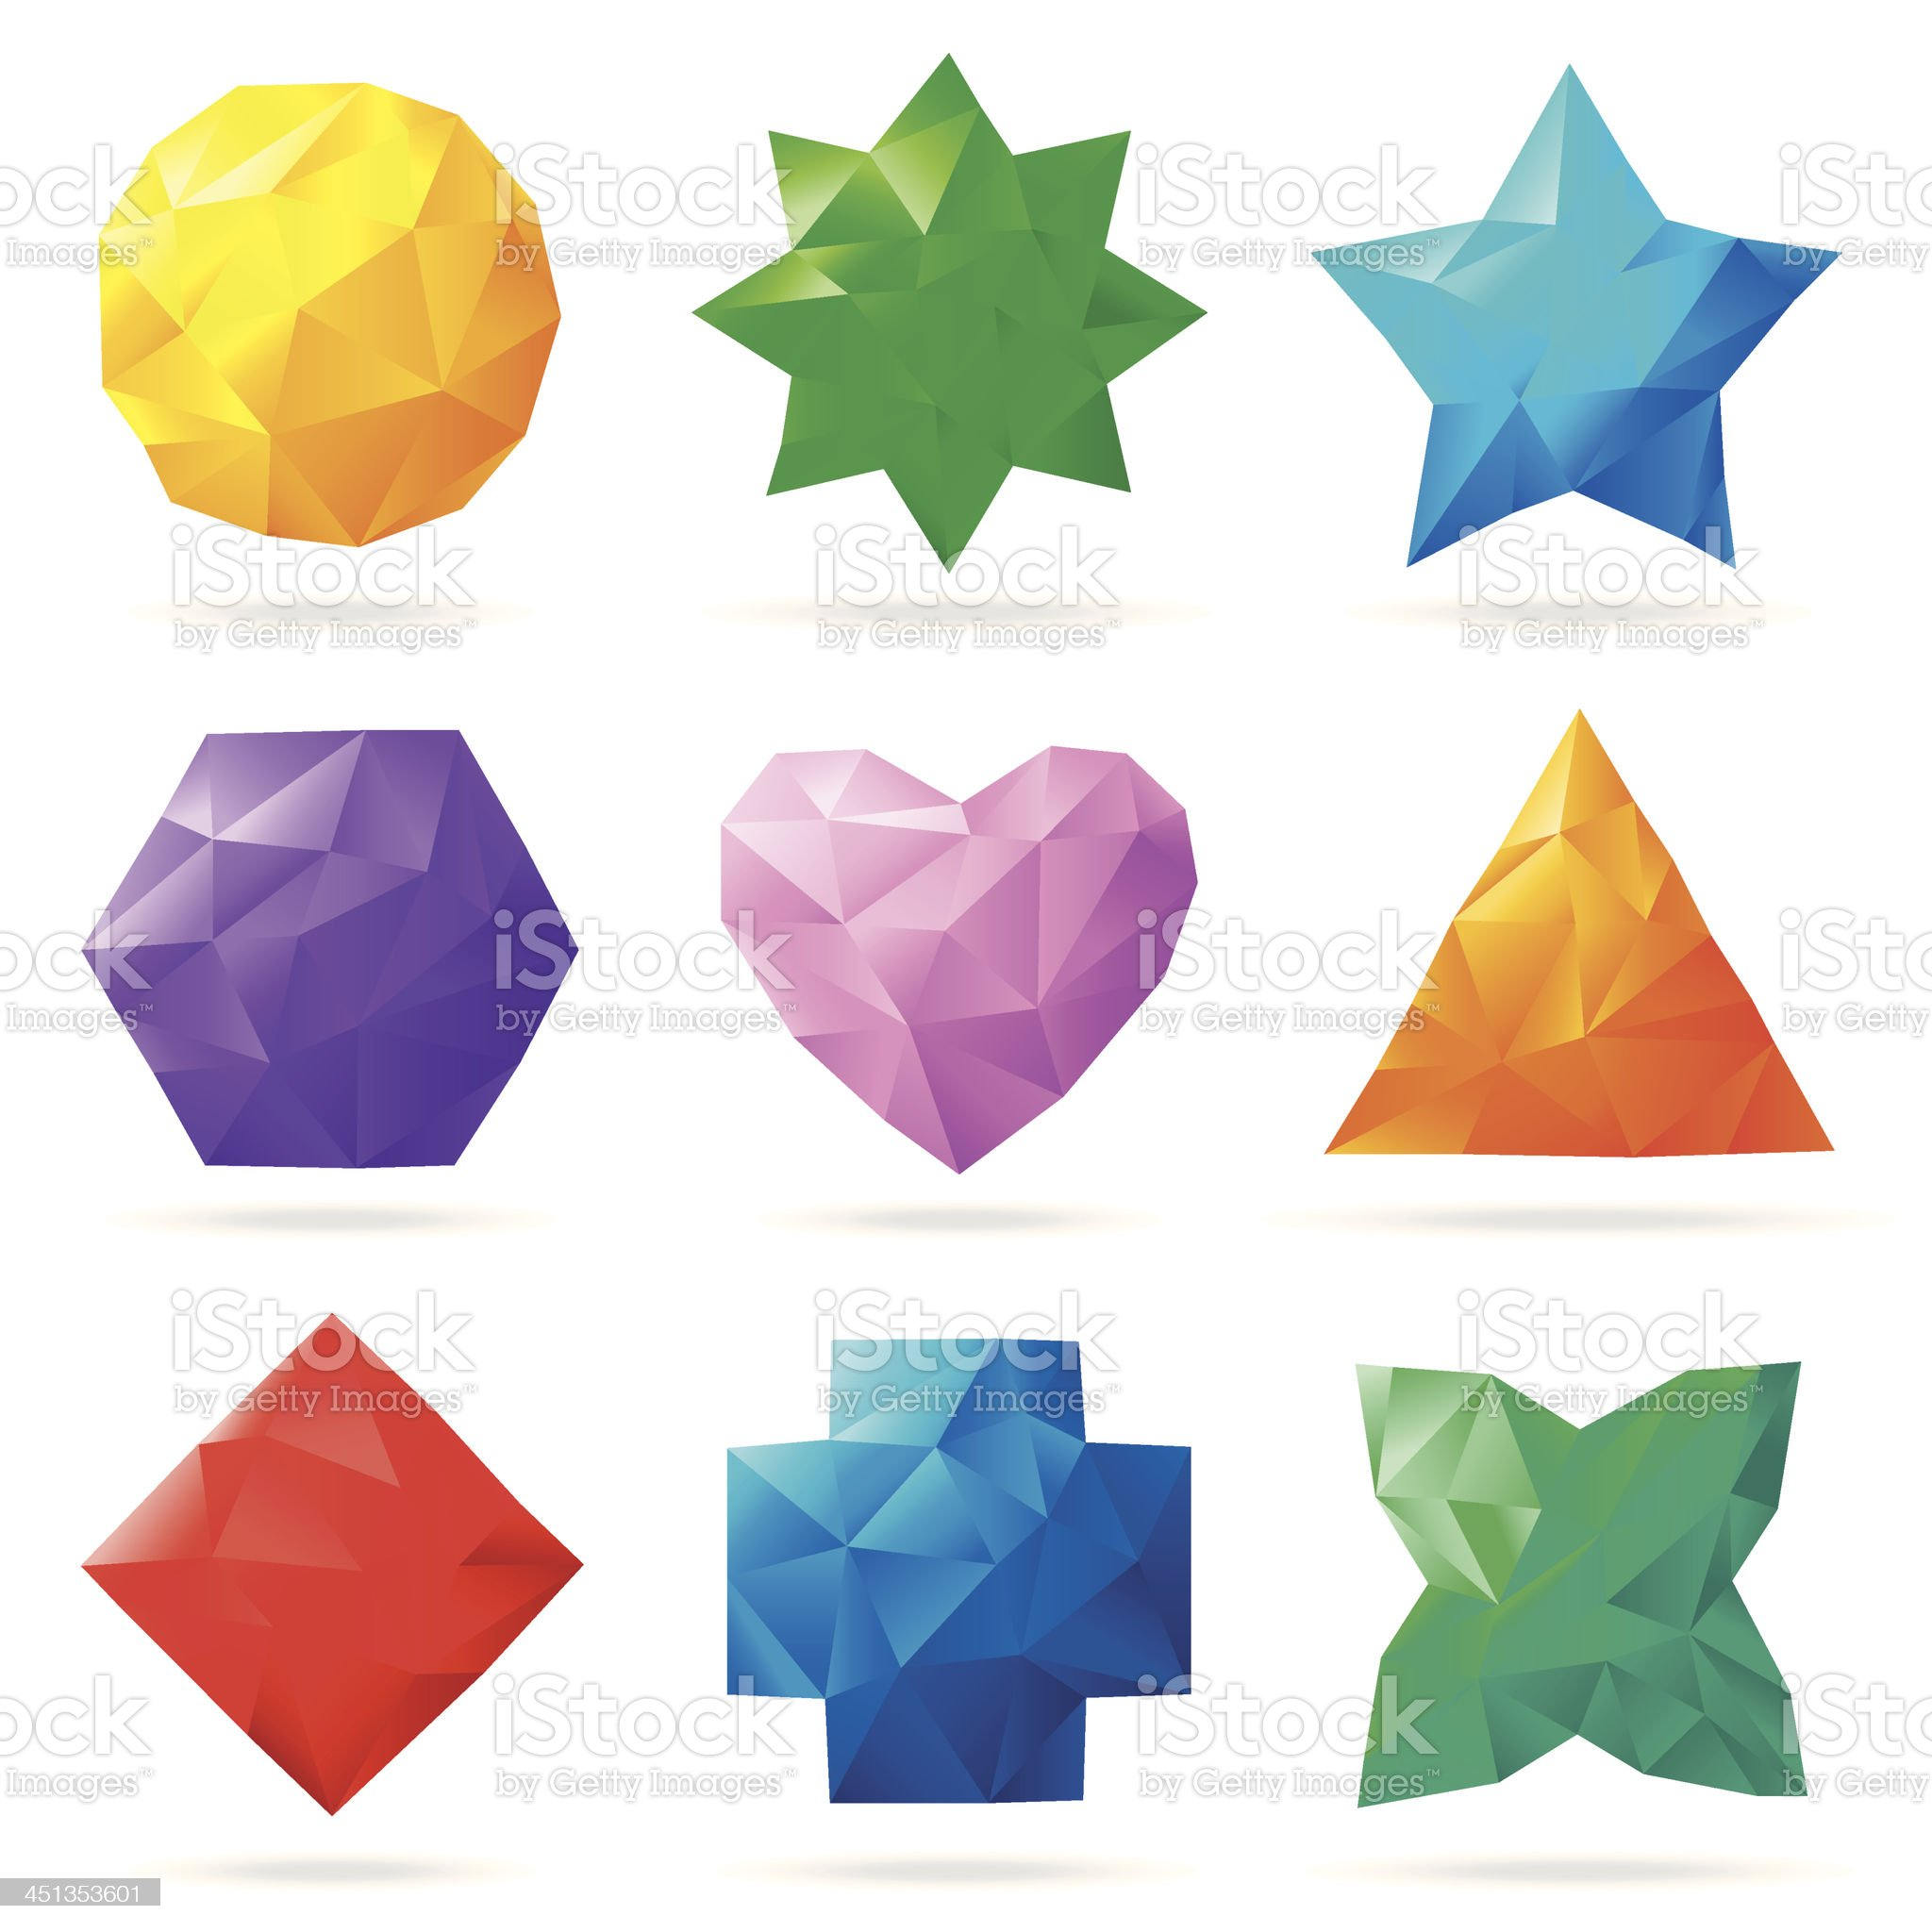 Multi colored polygonal shapes royalty-free stock vector art